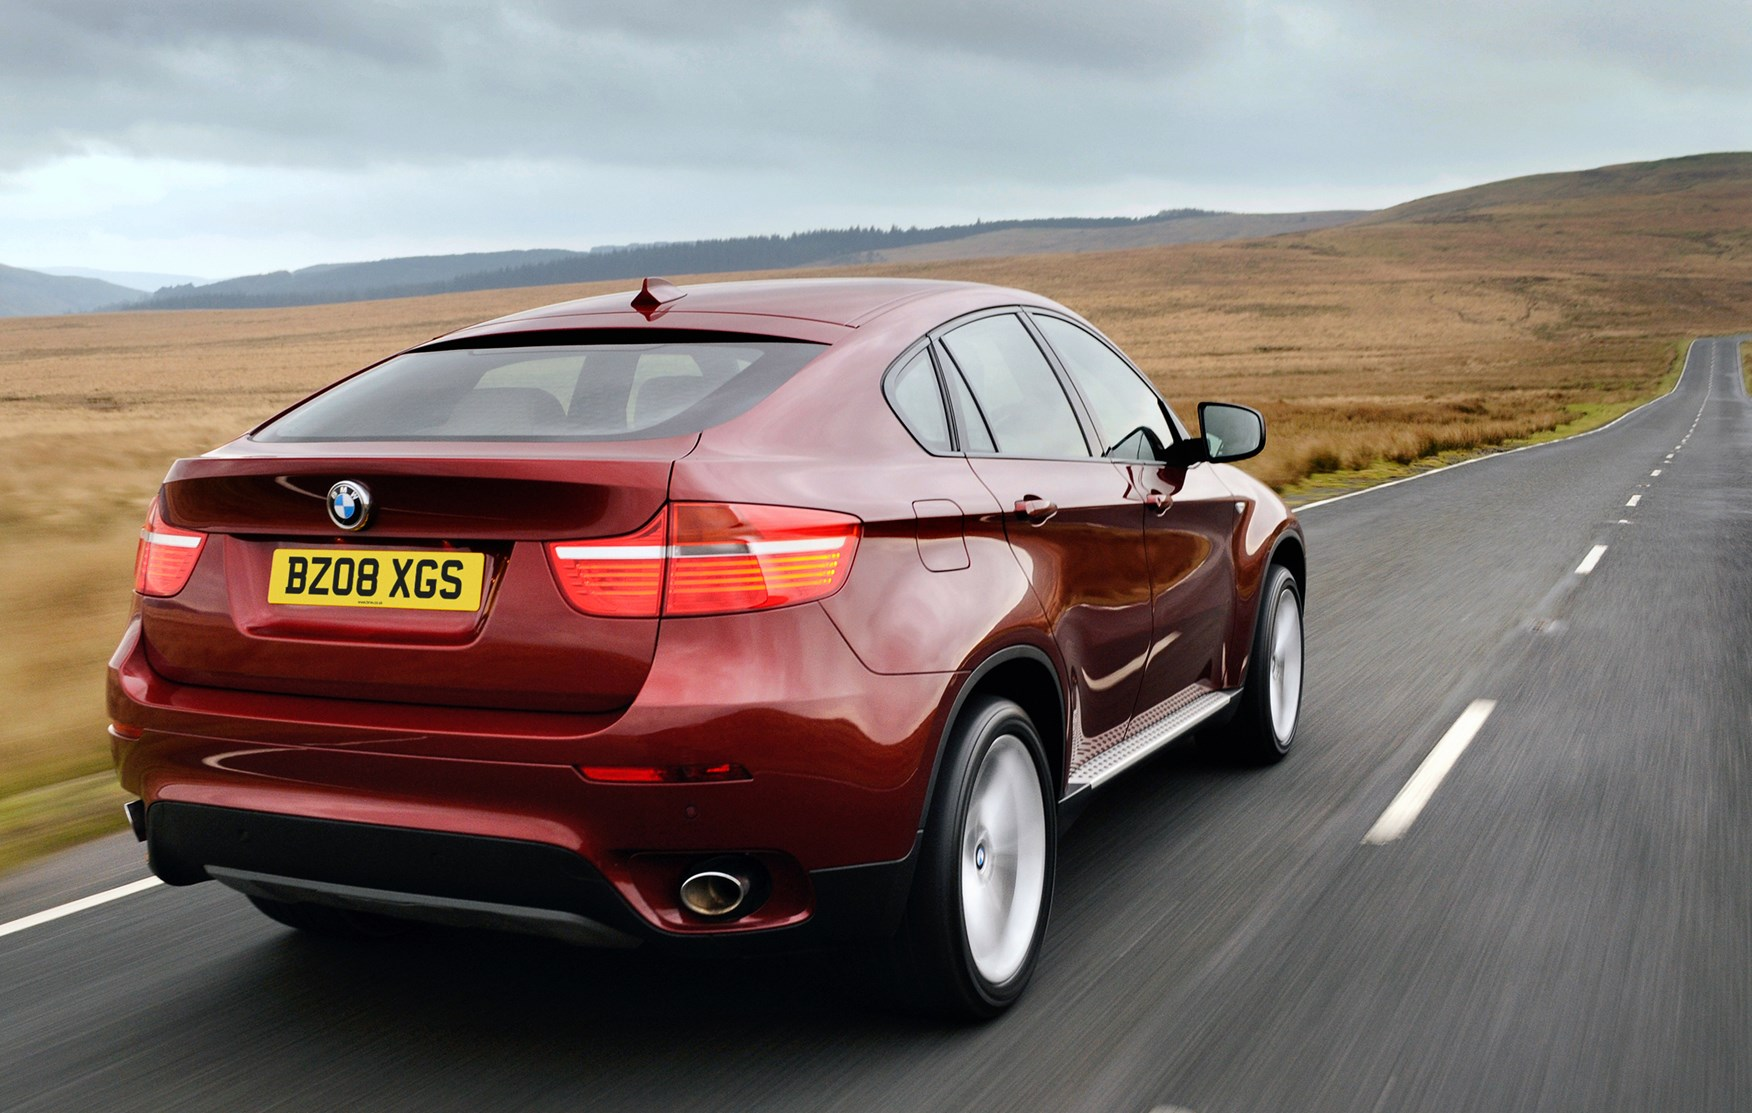 View all images of the bmw x6 08 14